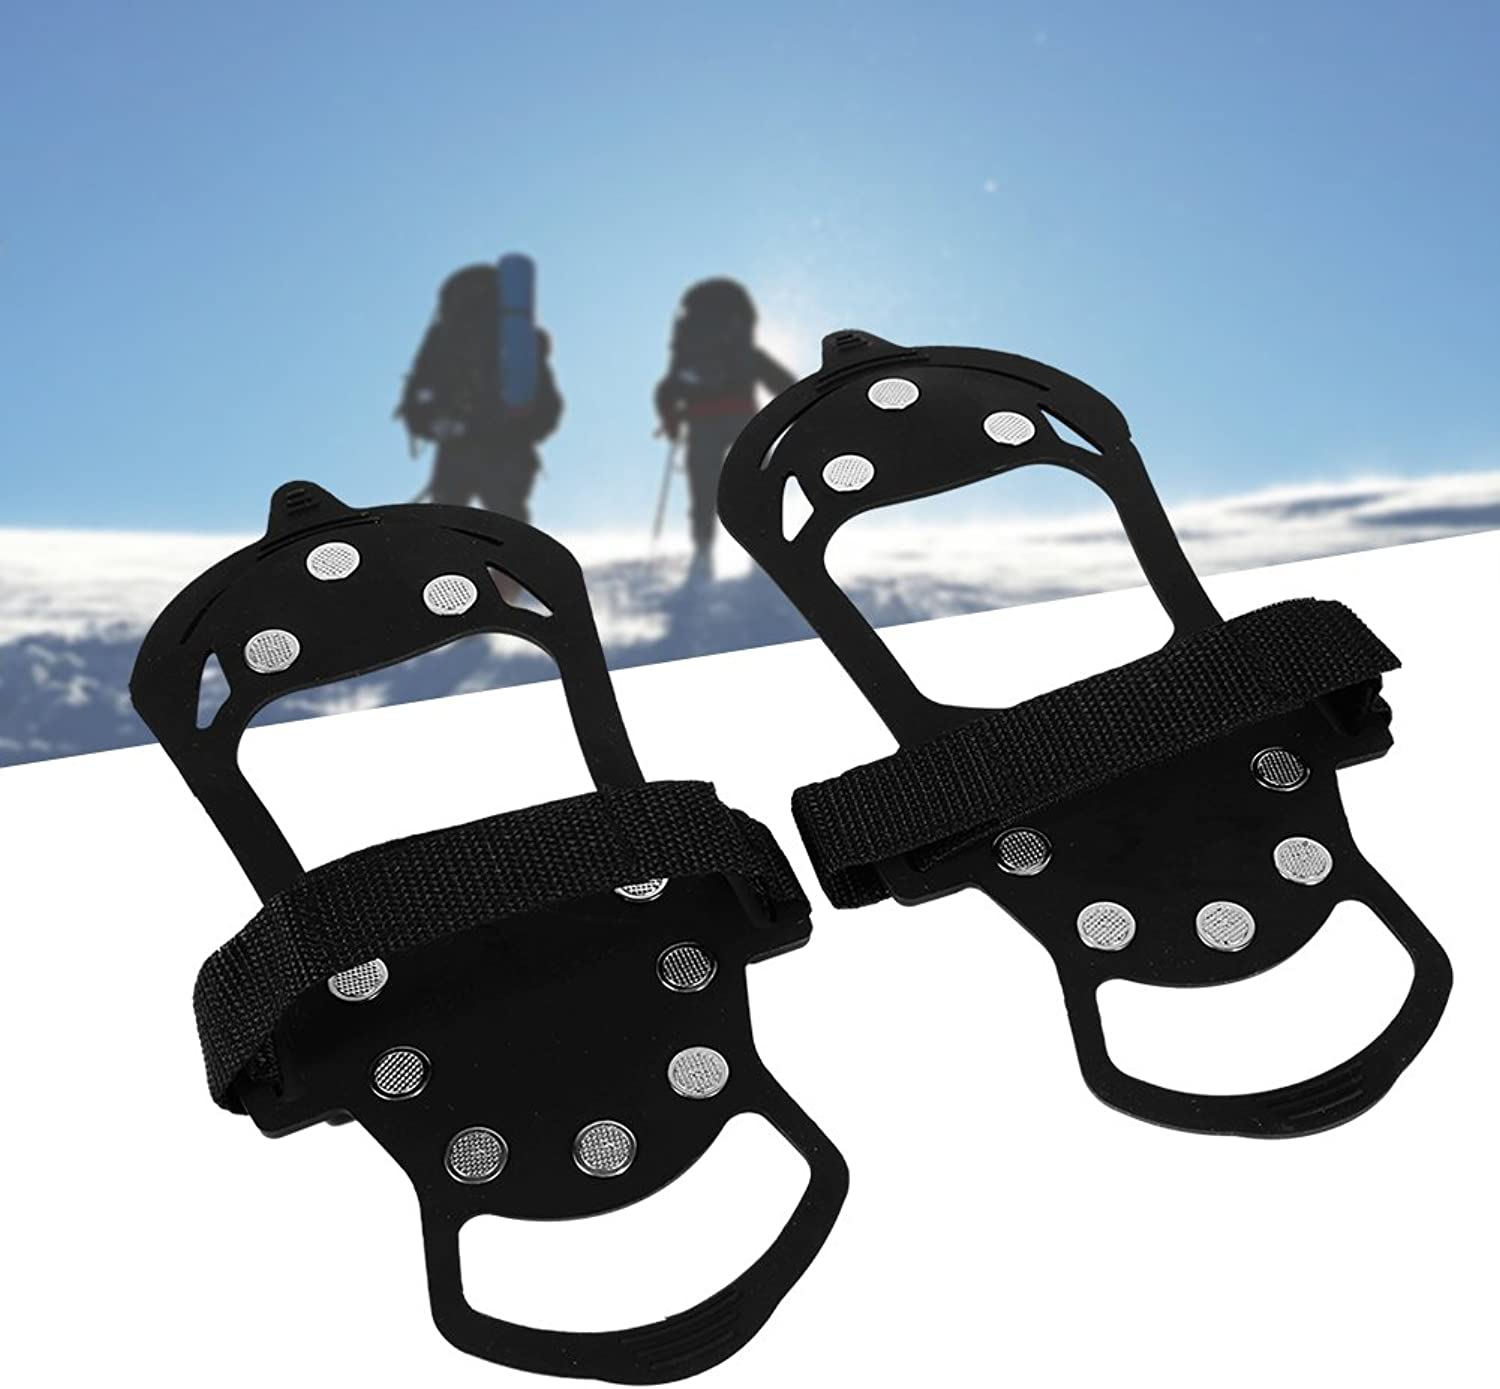 Ice Spikes,1 Pair Of Black 10teeth Traction Cleats Ice Snow Grips Crampons Anti Slip Gourd Shape Climbing Grips